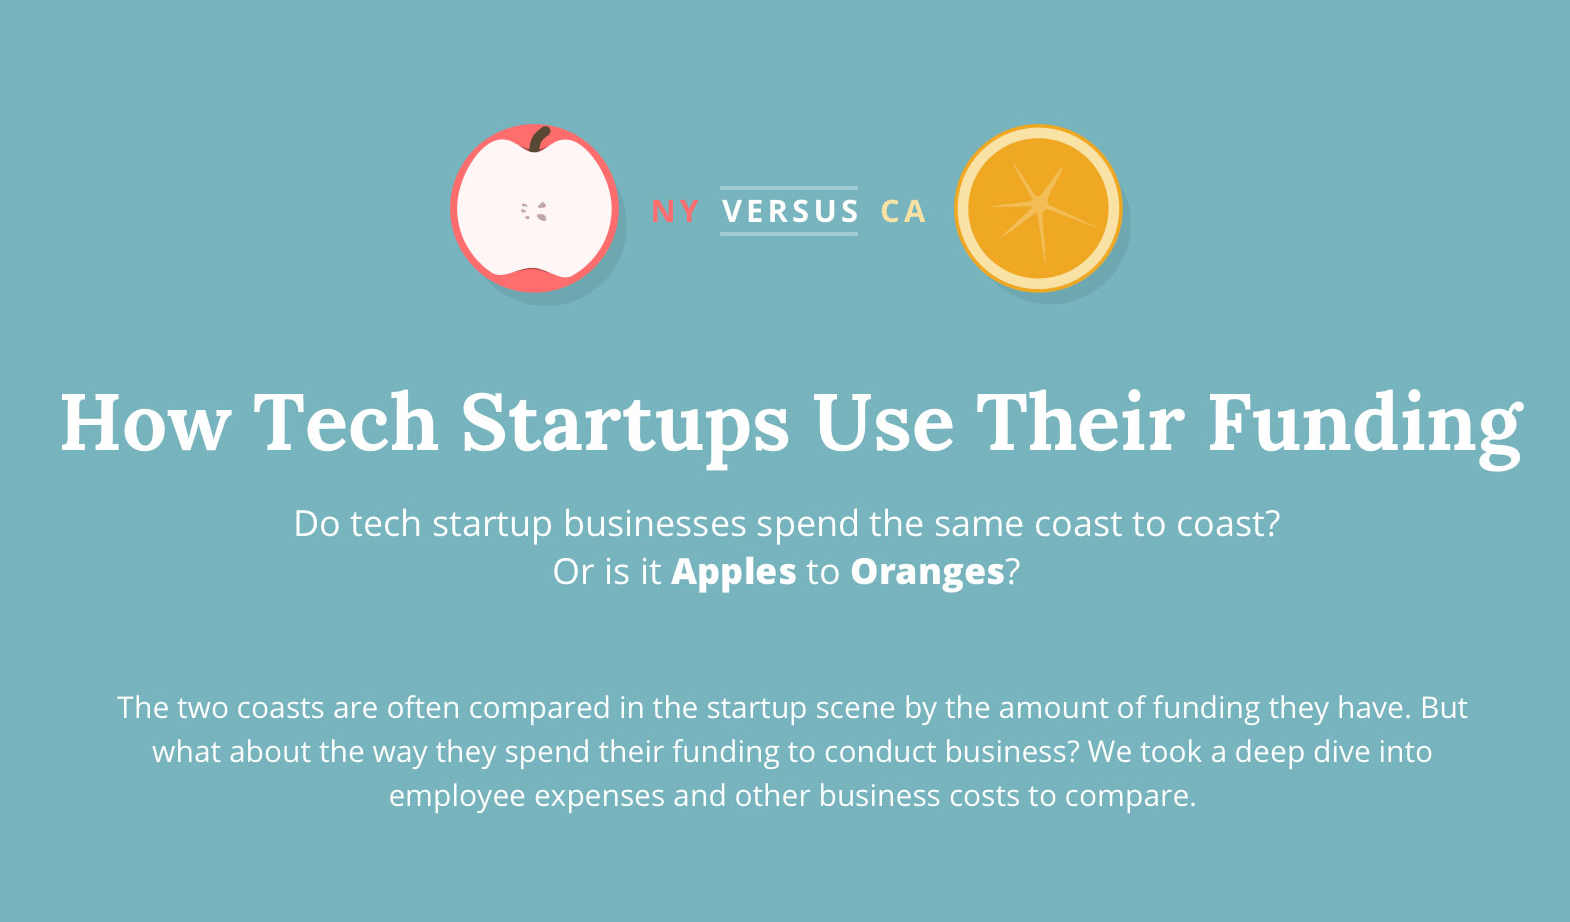 The Different Ways Tech Startups in New York and San Francisco Spend Money - Infographic